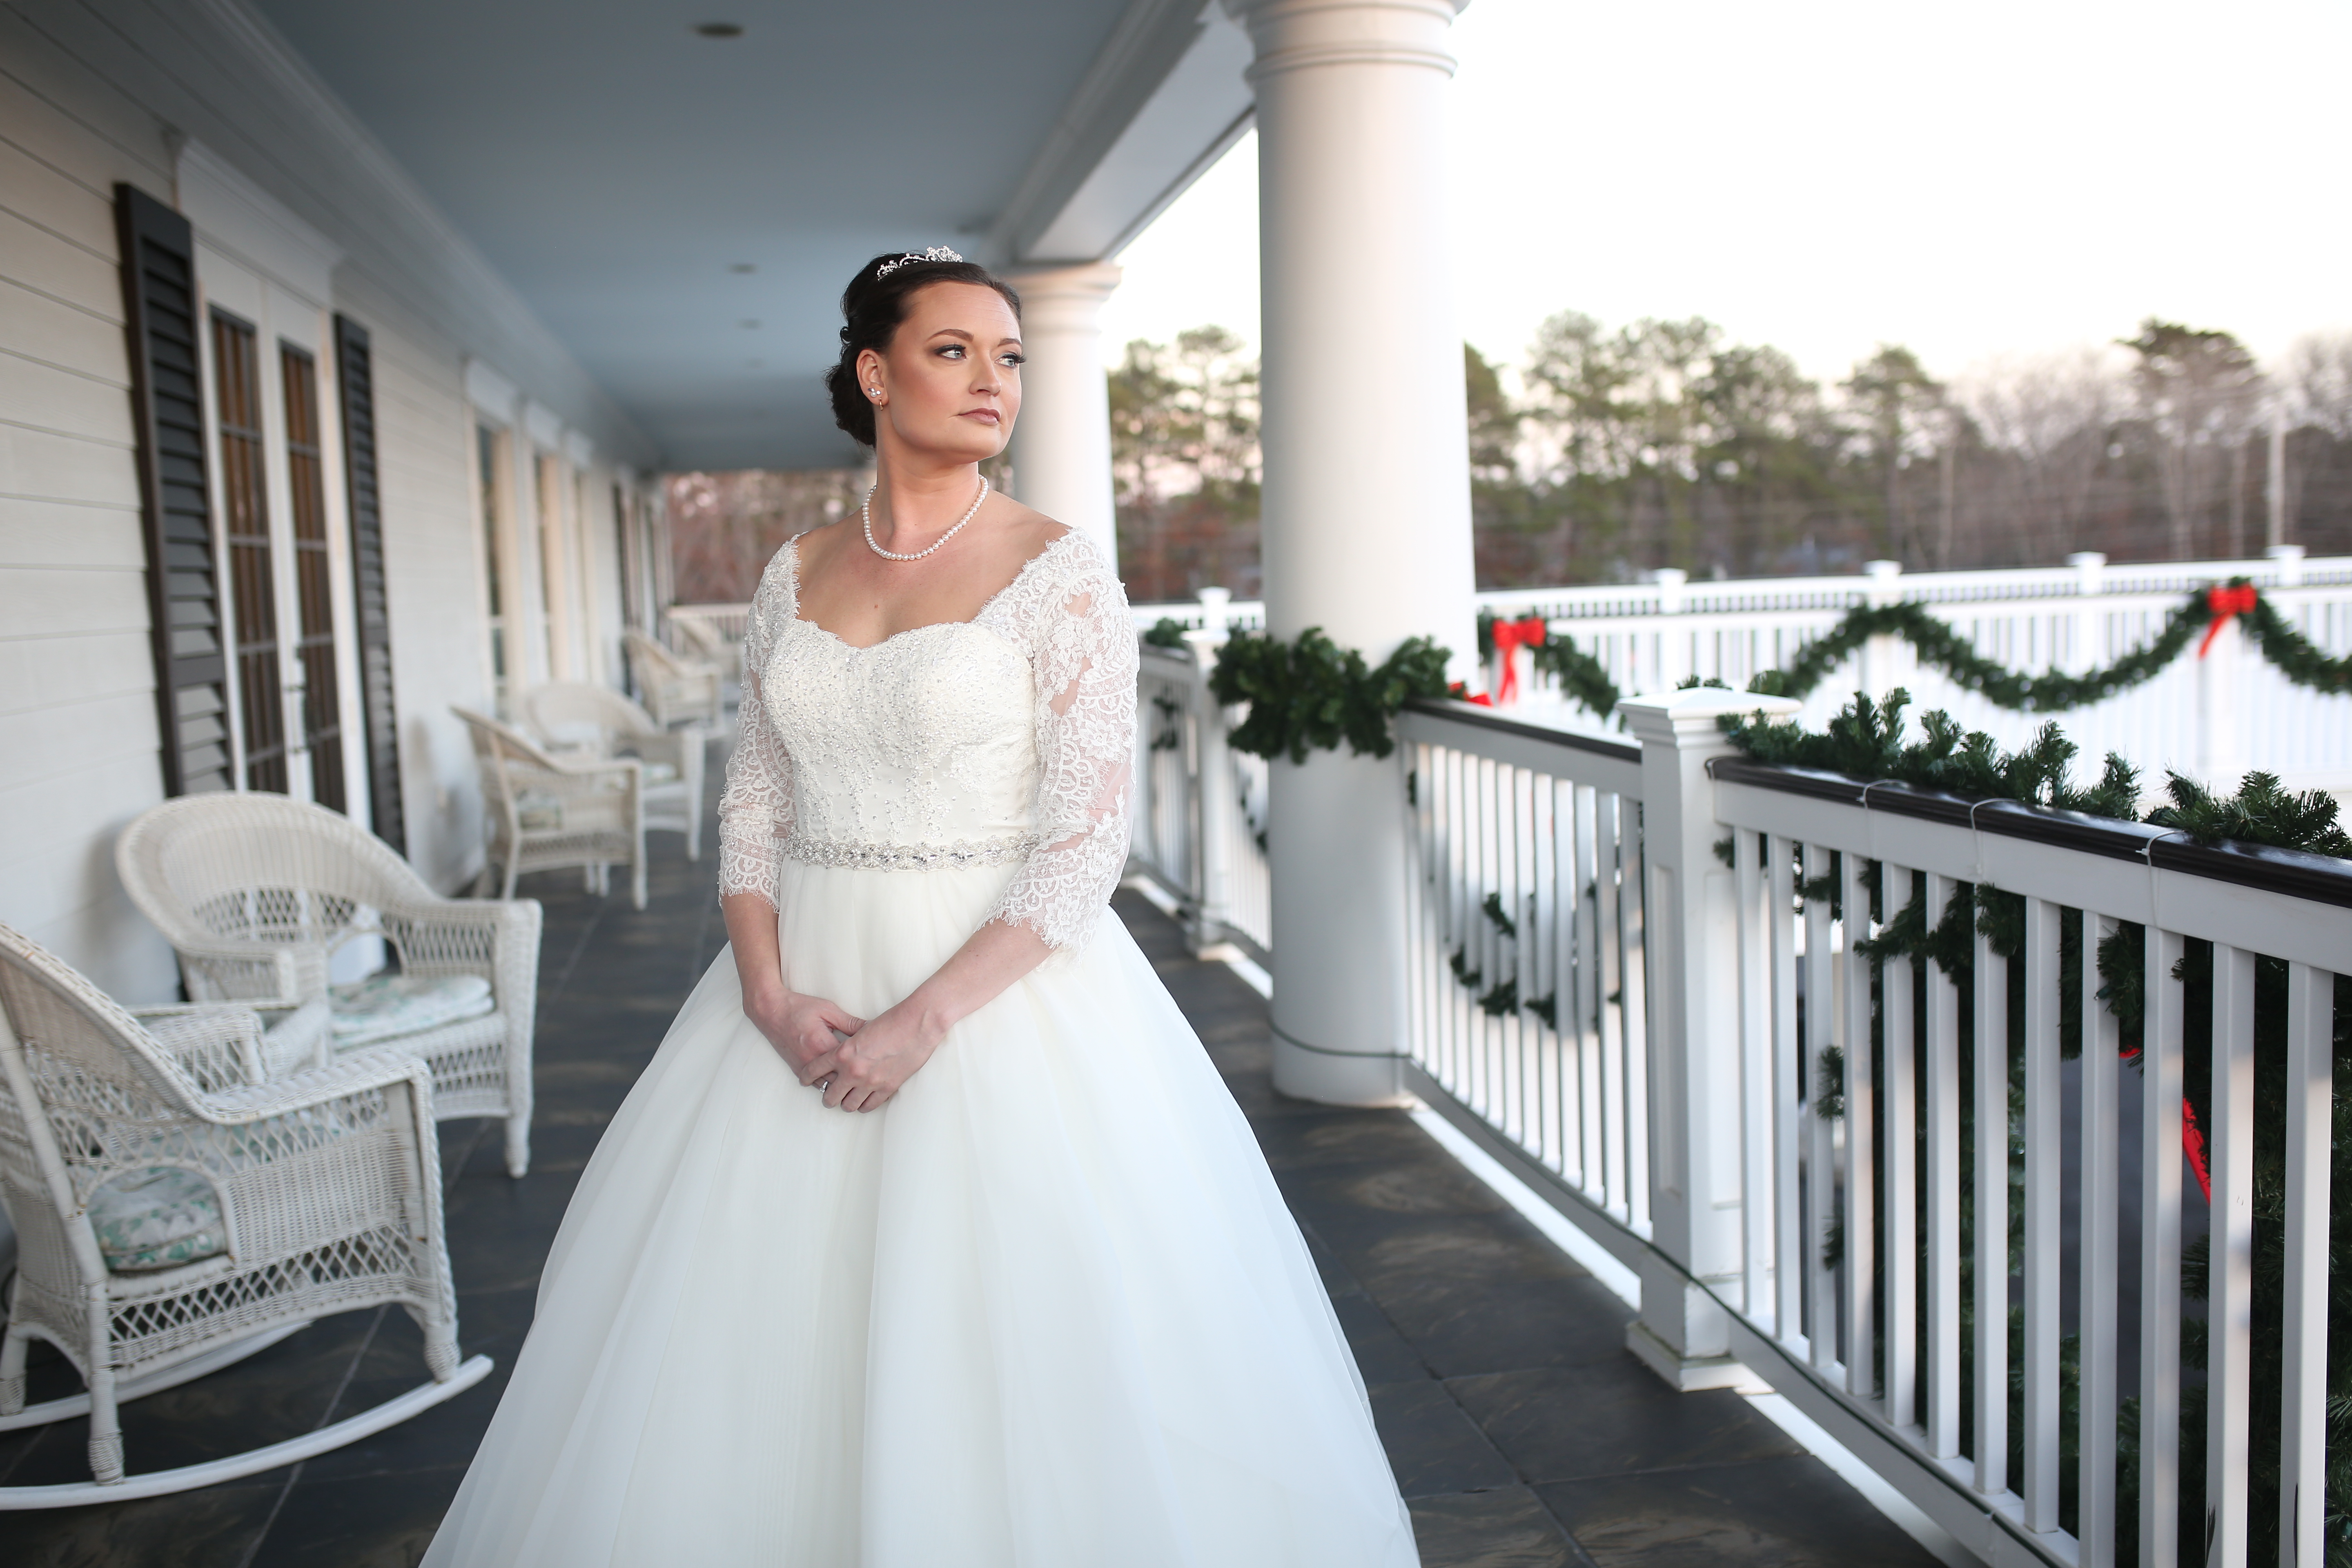 the bride at the caridge house